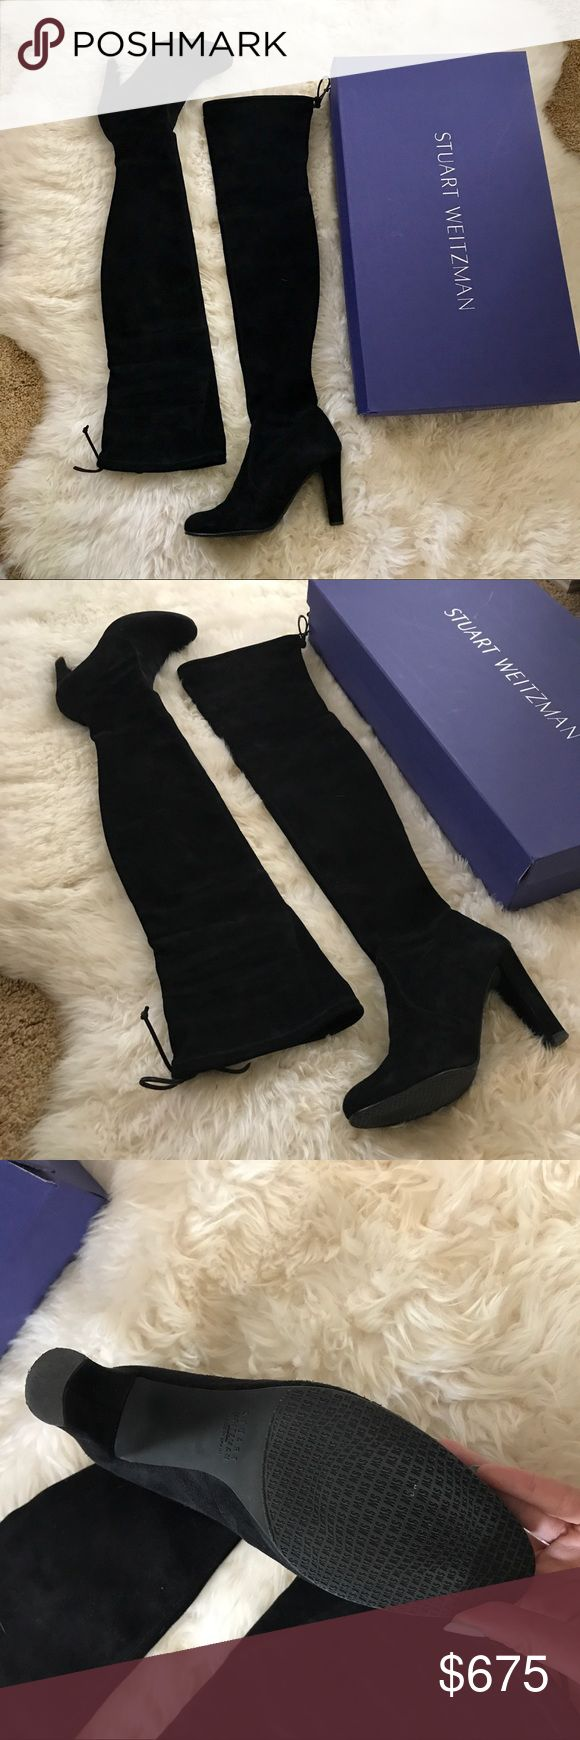 Stuart Weitzman Highland Black Suede Size 7.5 Preowned pair of Stuart Weitzman Over the Knee Highland Black Suede Boots!! In size 7.5!! Gently used in excellent condition. Worn once. These boots are perfect for winter time, elegant suede leather and extremely fitted. Run true to size. 💕💕💕 no low balling.. Hate to let these go but hopefully they will find a new owner that loves them just as much. Comes with original box and receipt. They retail at $798+tax. Send me a reasonable offer and I…